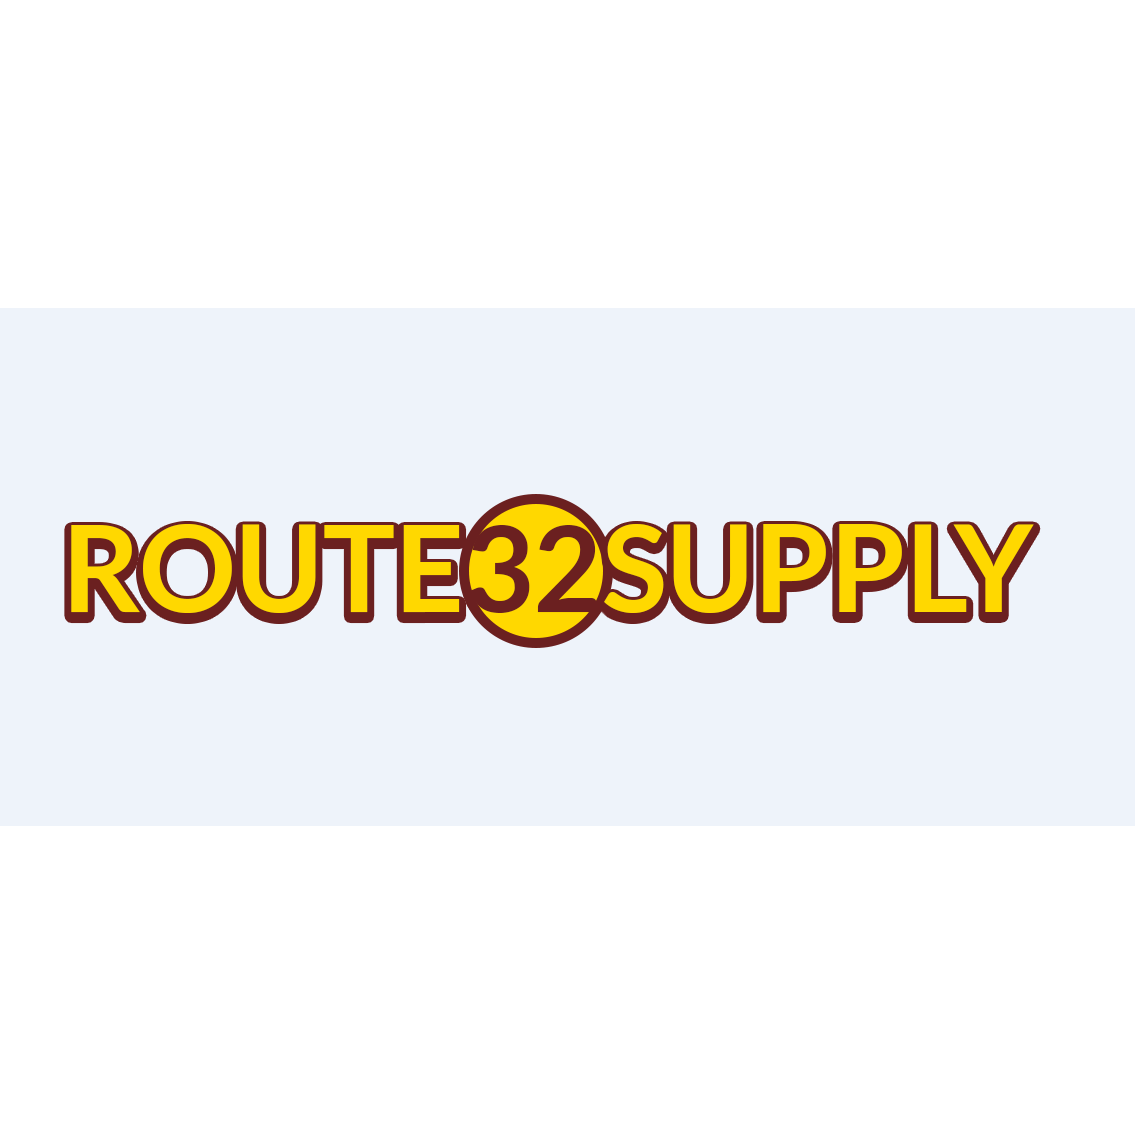 Route 32 Supply image 3